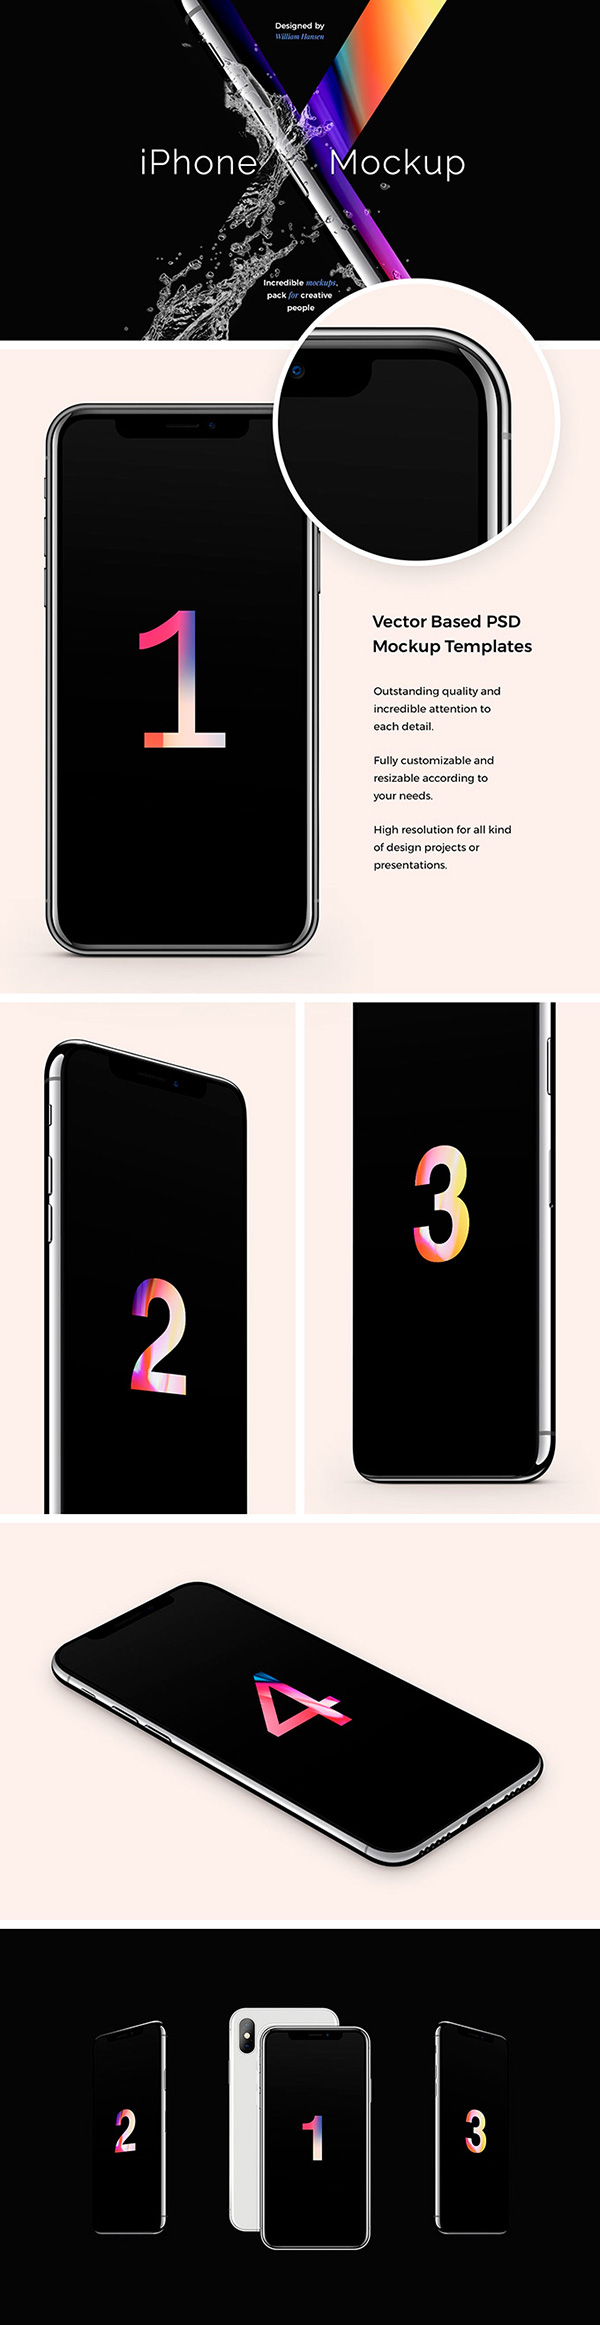 iPhone X Free Mockup Set